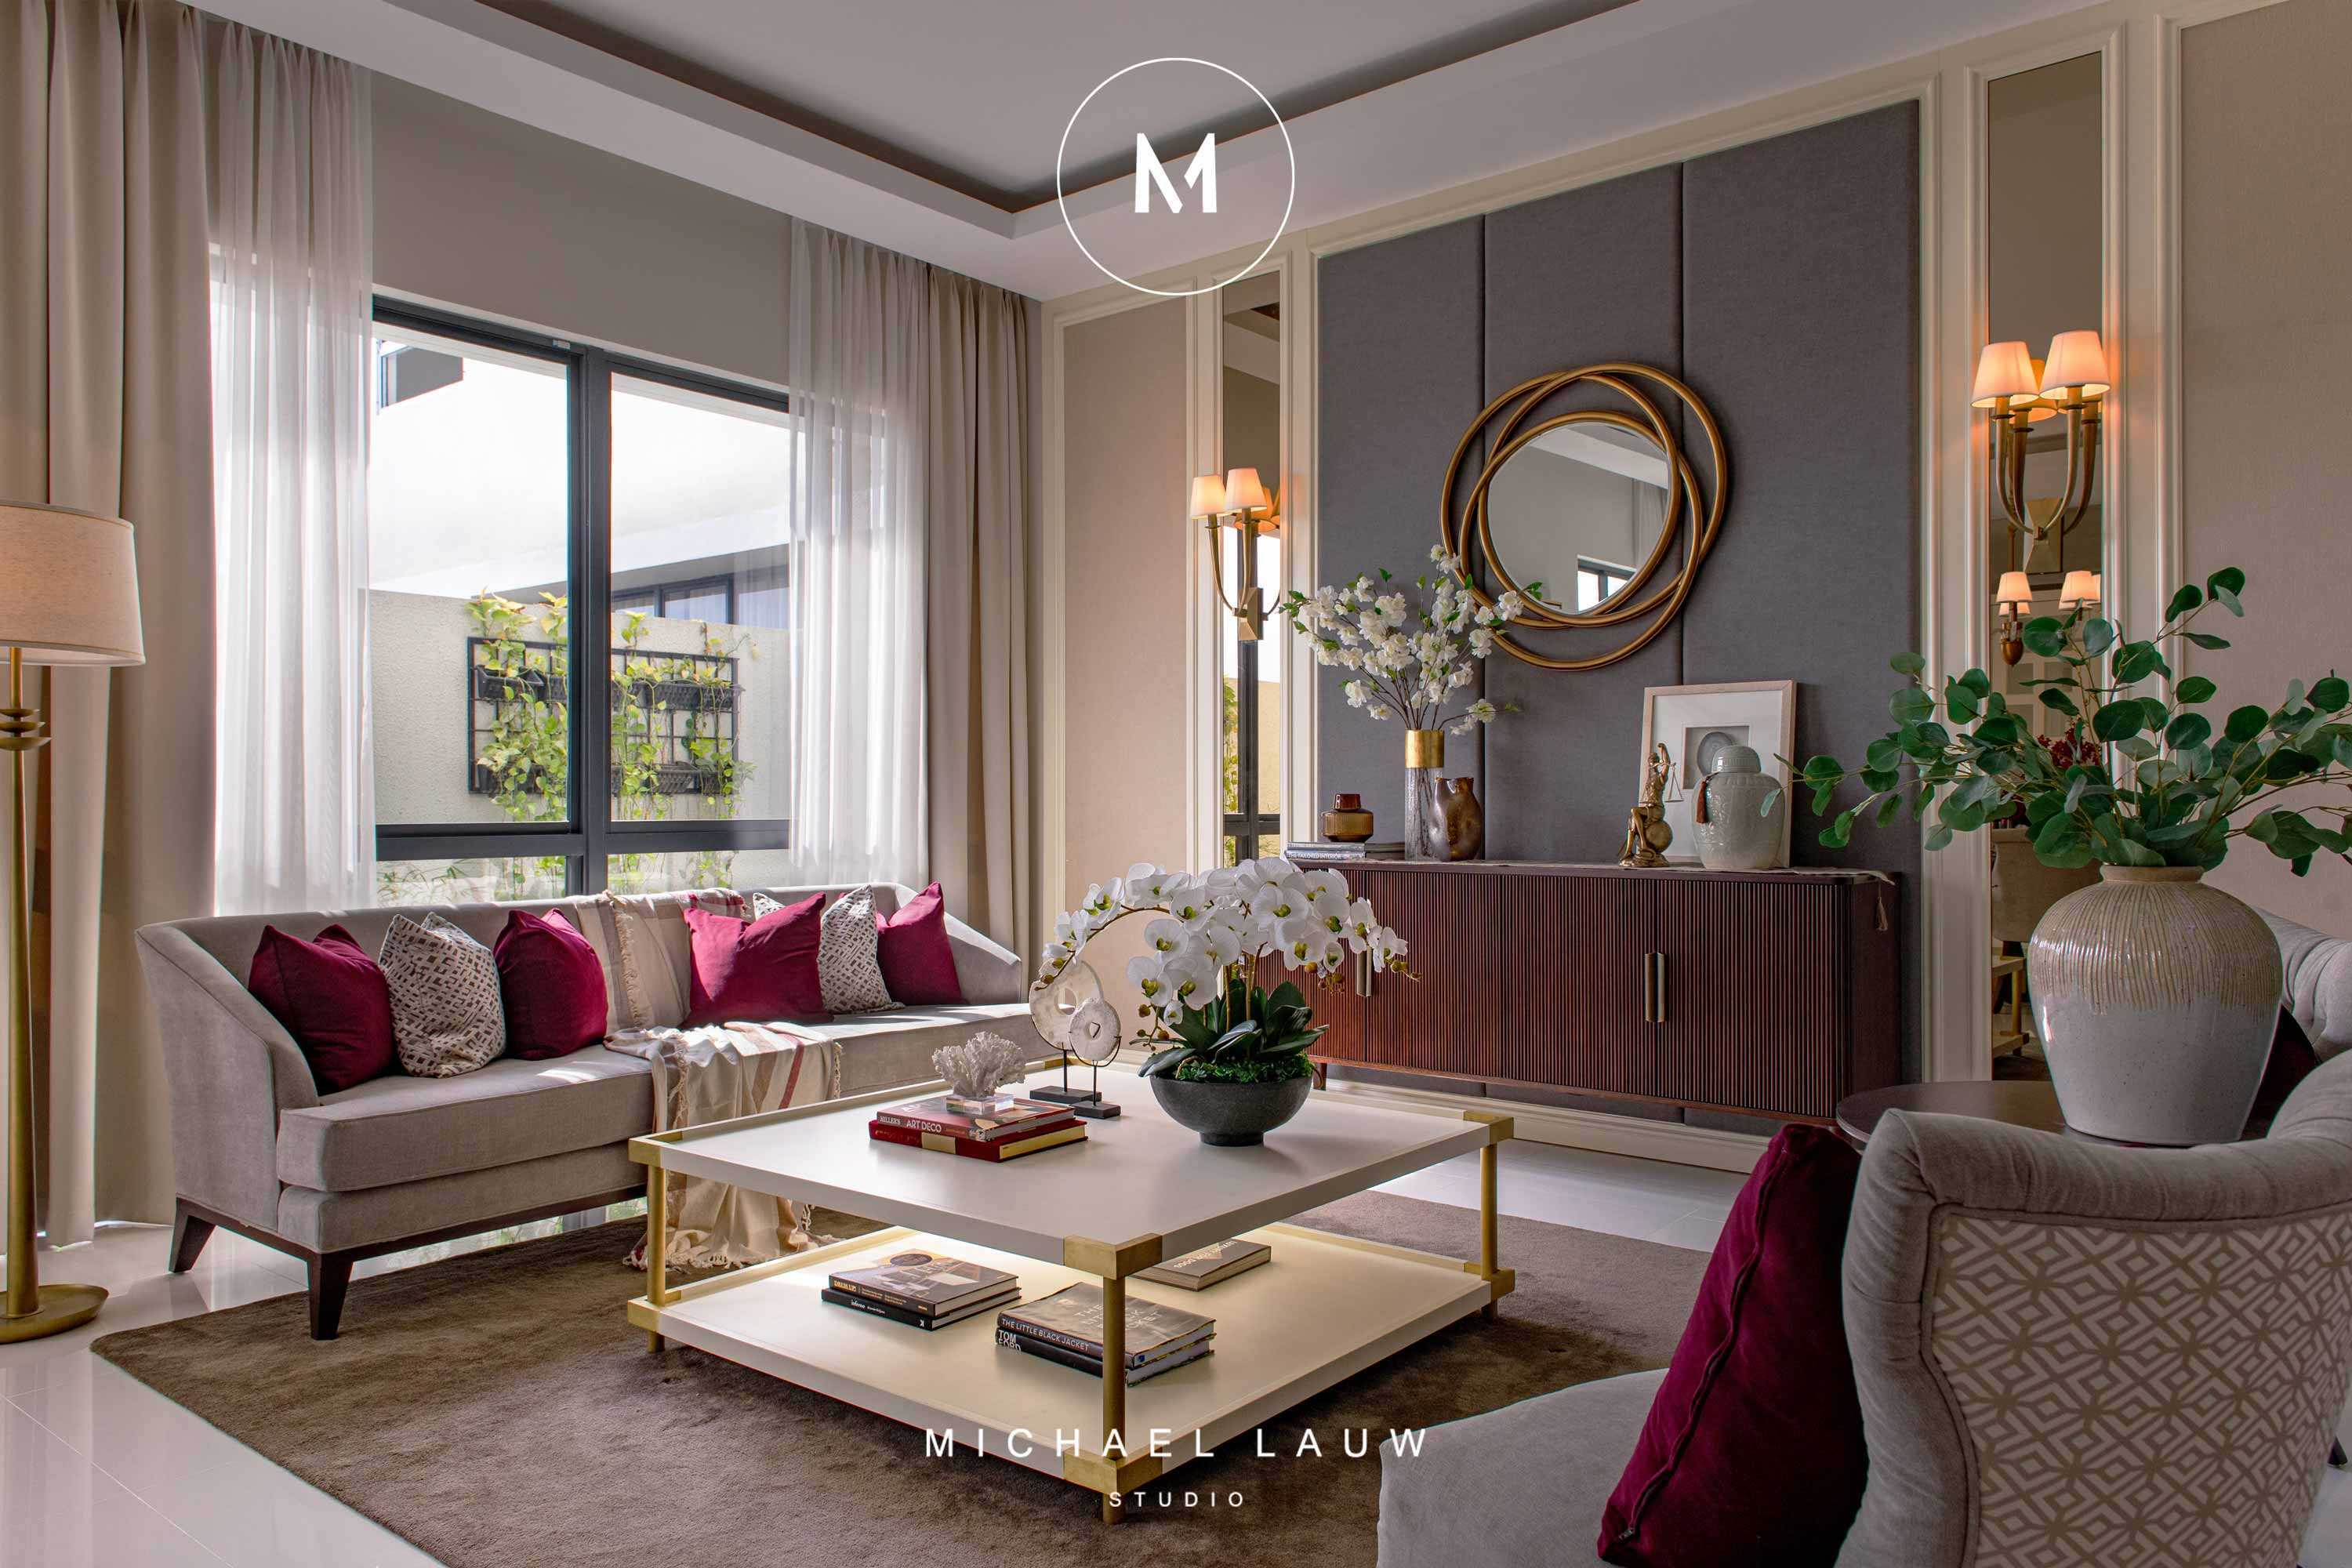 Michael Lauw Studio Alder Surabaya, Kota Sby, Jawa Timur, Indonesia Surabaya, Kota Sby, Jawa Timur, Indonesia Michael-Lauw-Studio-Alder  <P>Livable Luxury Interior Designed By Michael Lauw From Surabaya Interior Consultant Firm Michael Lauw Studio. Project Located At Surabaya, Indonesia. #michaellauw #michaellauwstudio #interiordesigner #interiorconsultant #interiorsurabaya #designersurabaya #interiordesign</p> 83587